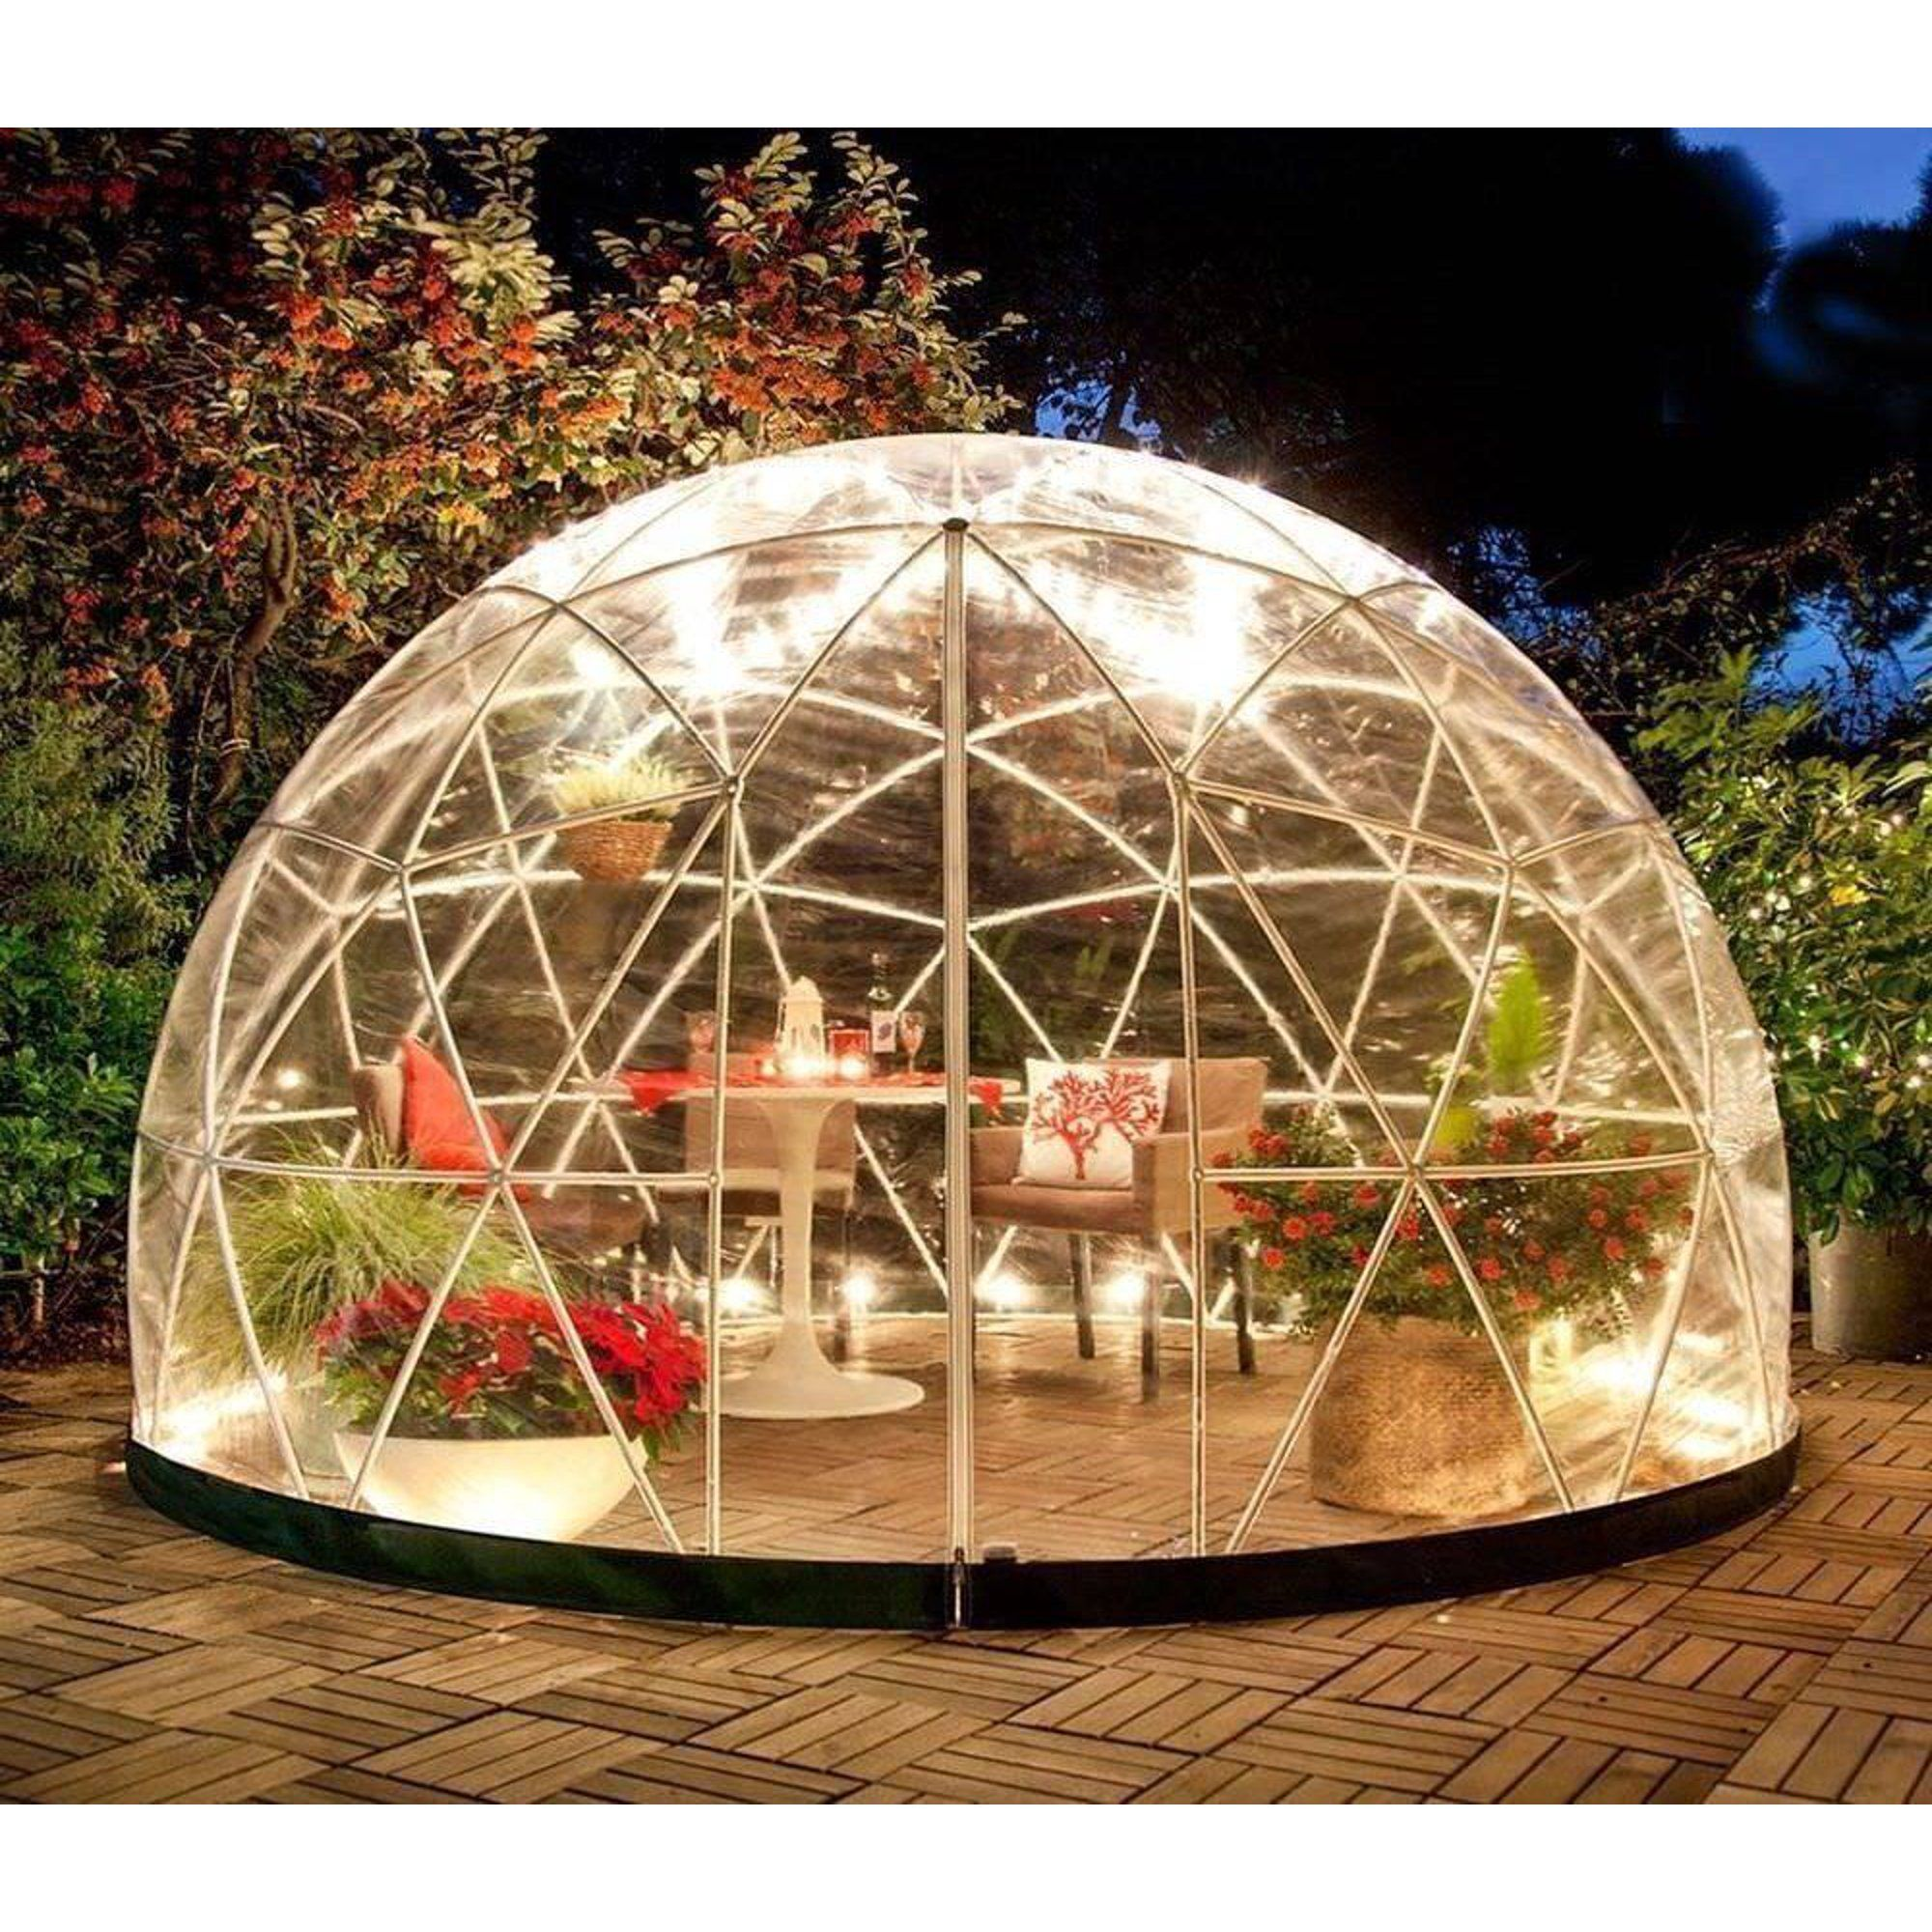 Garden Igloo - 12' Walk-In Garden Dome Igloo - Walmart.com